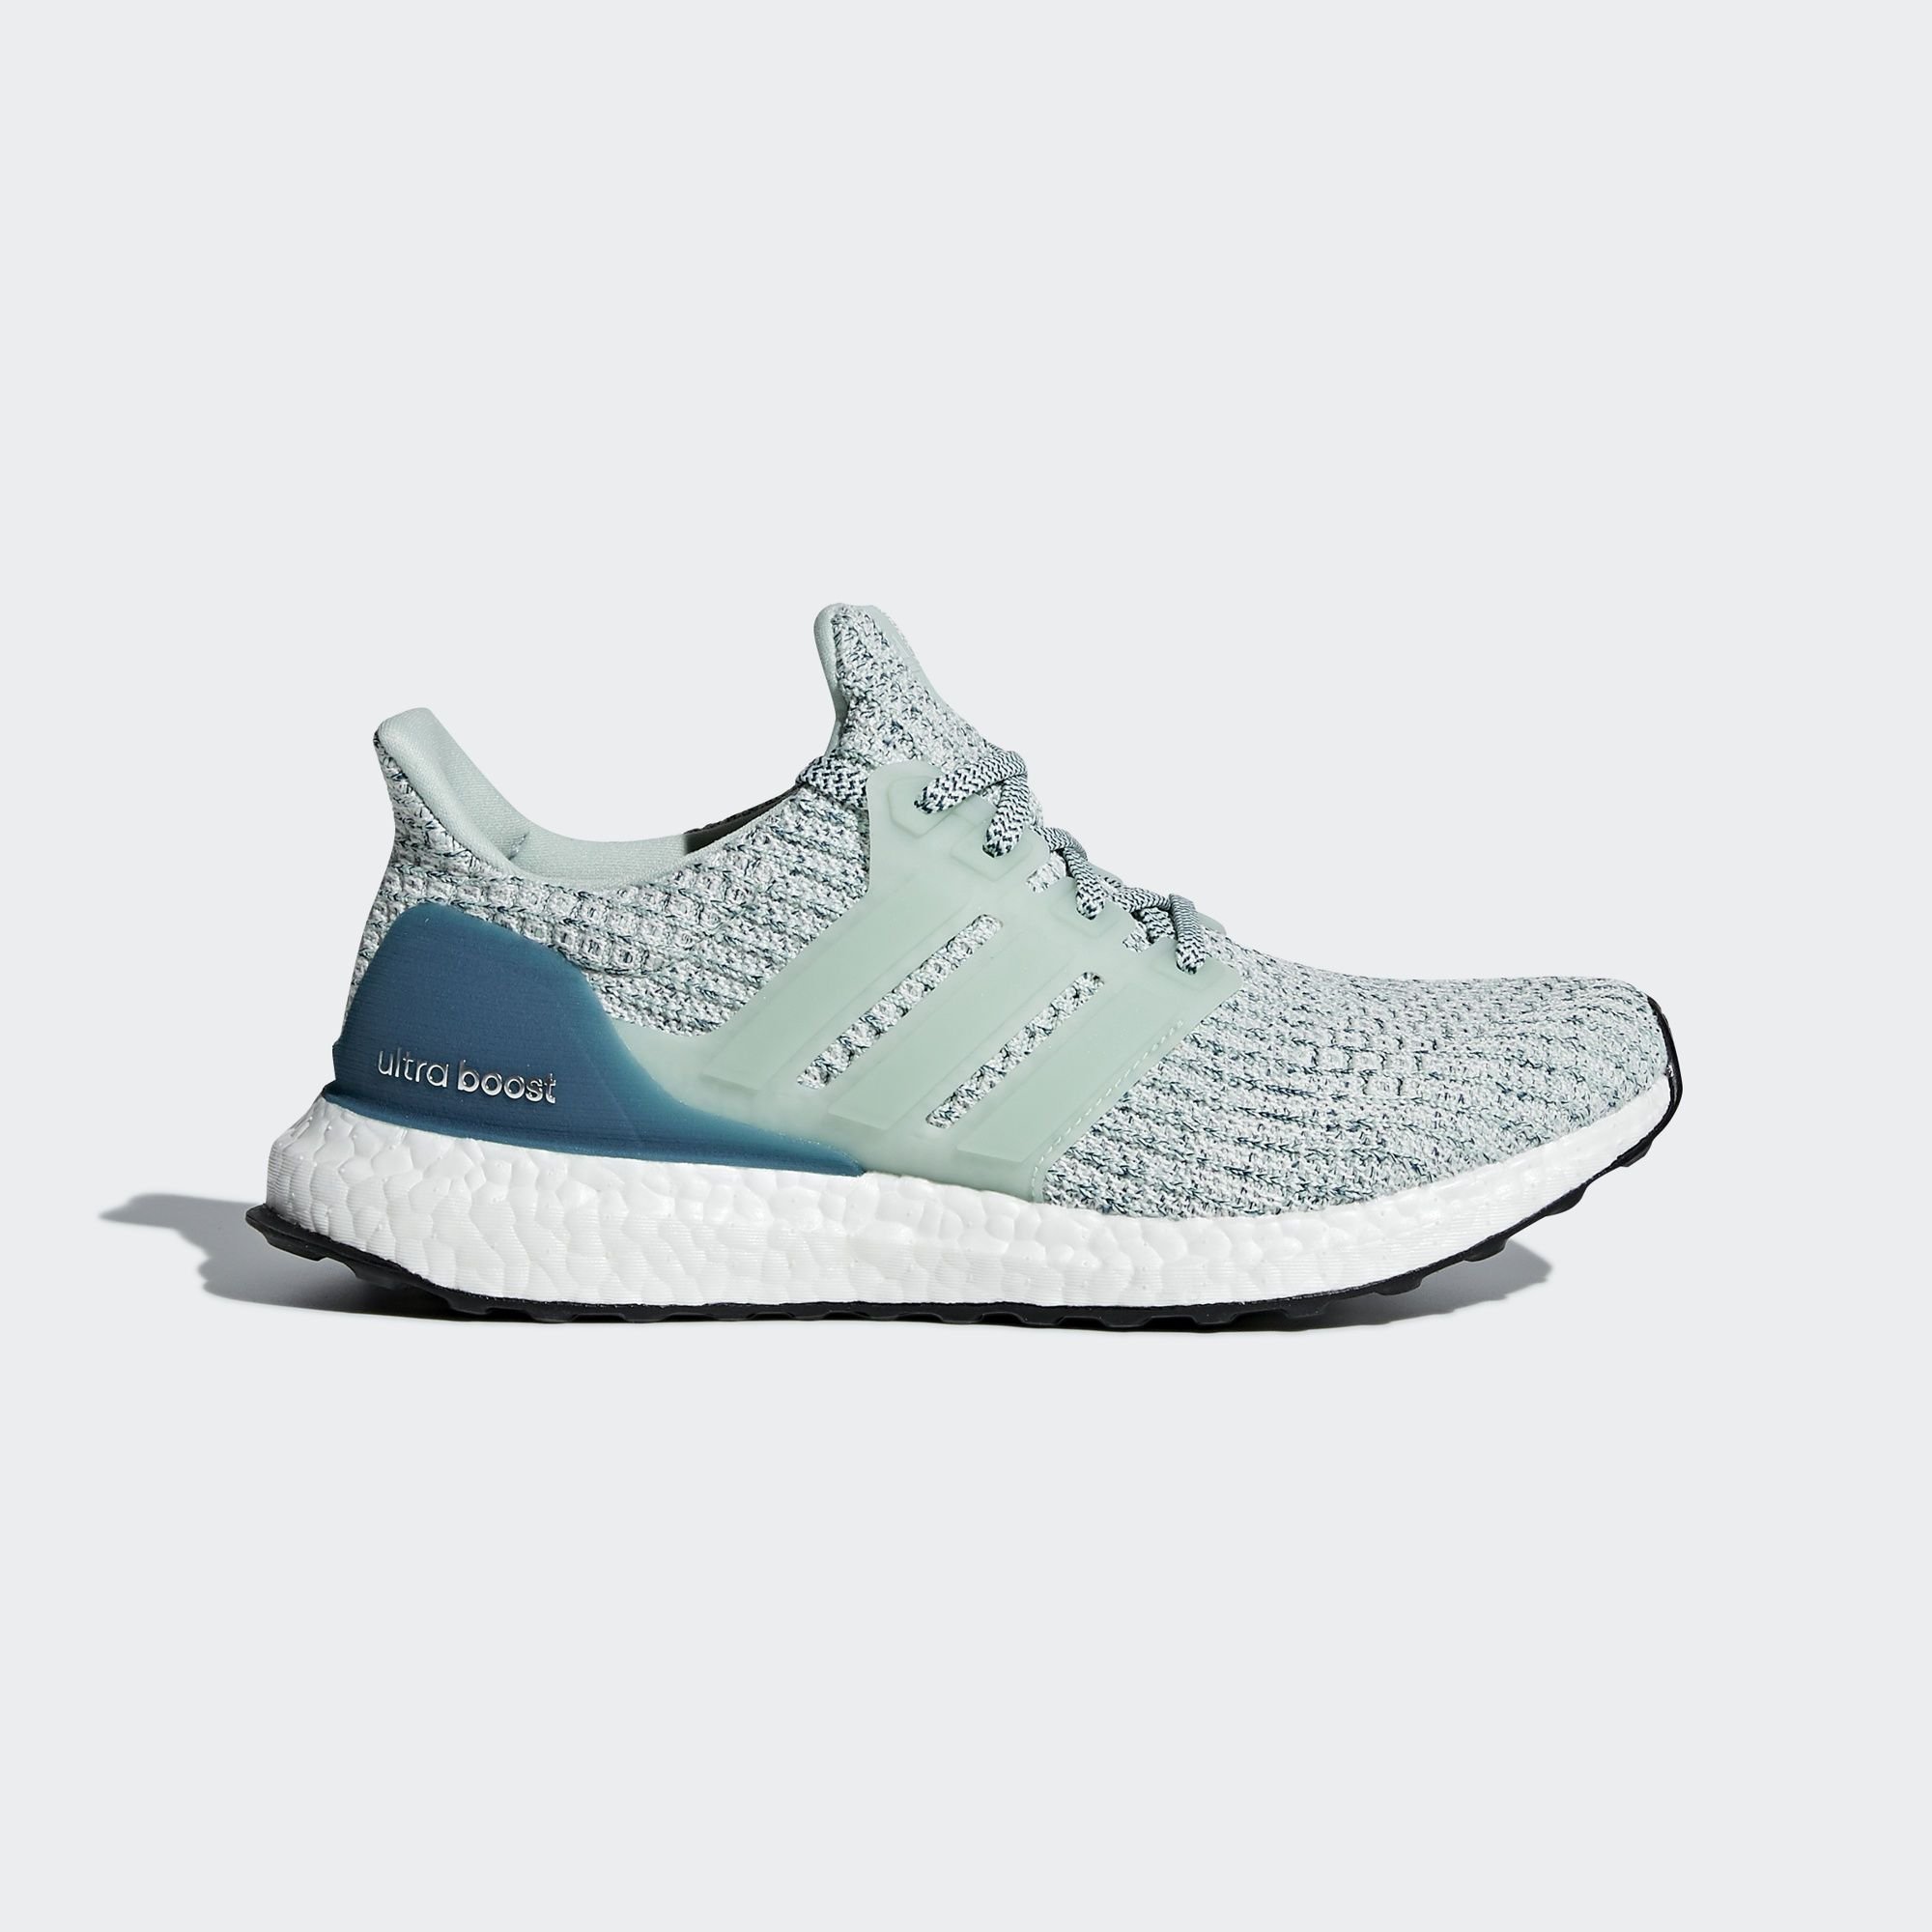 Shop the Ultraboost Shoes - Green at